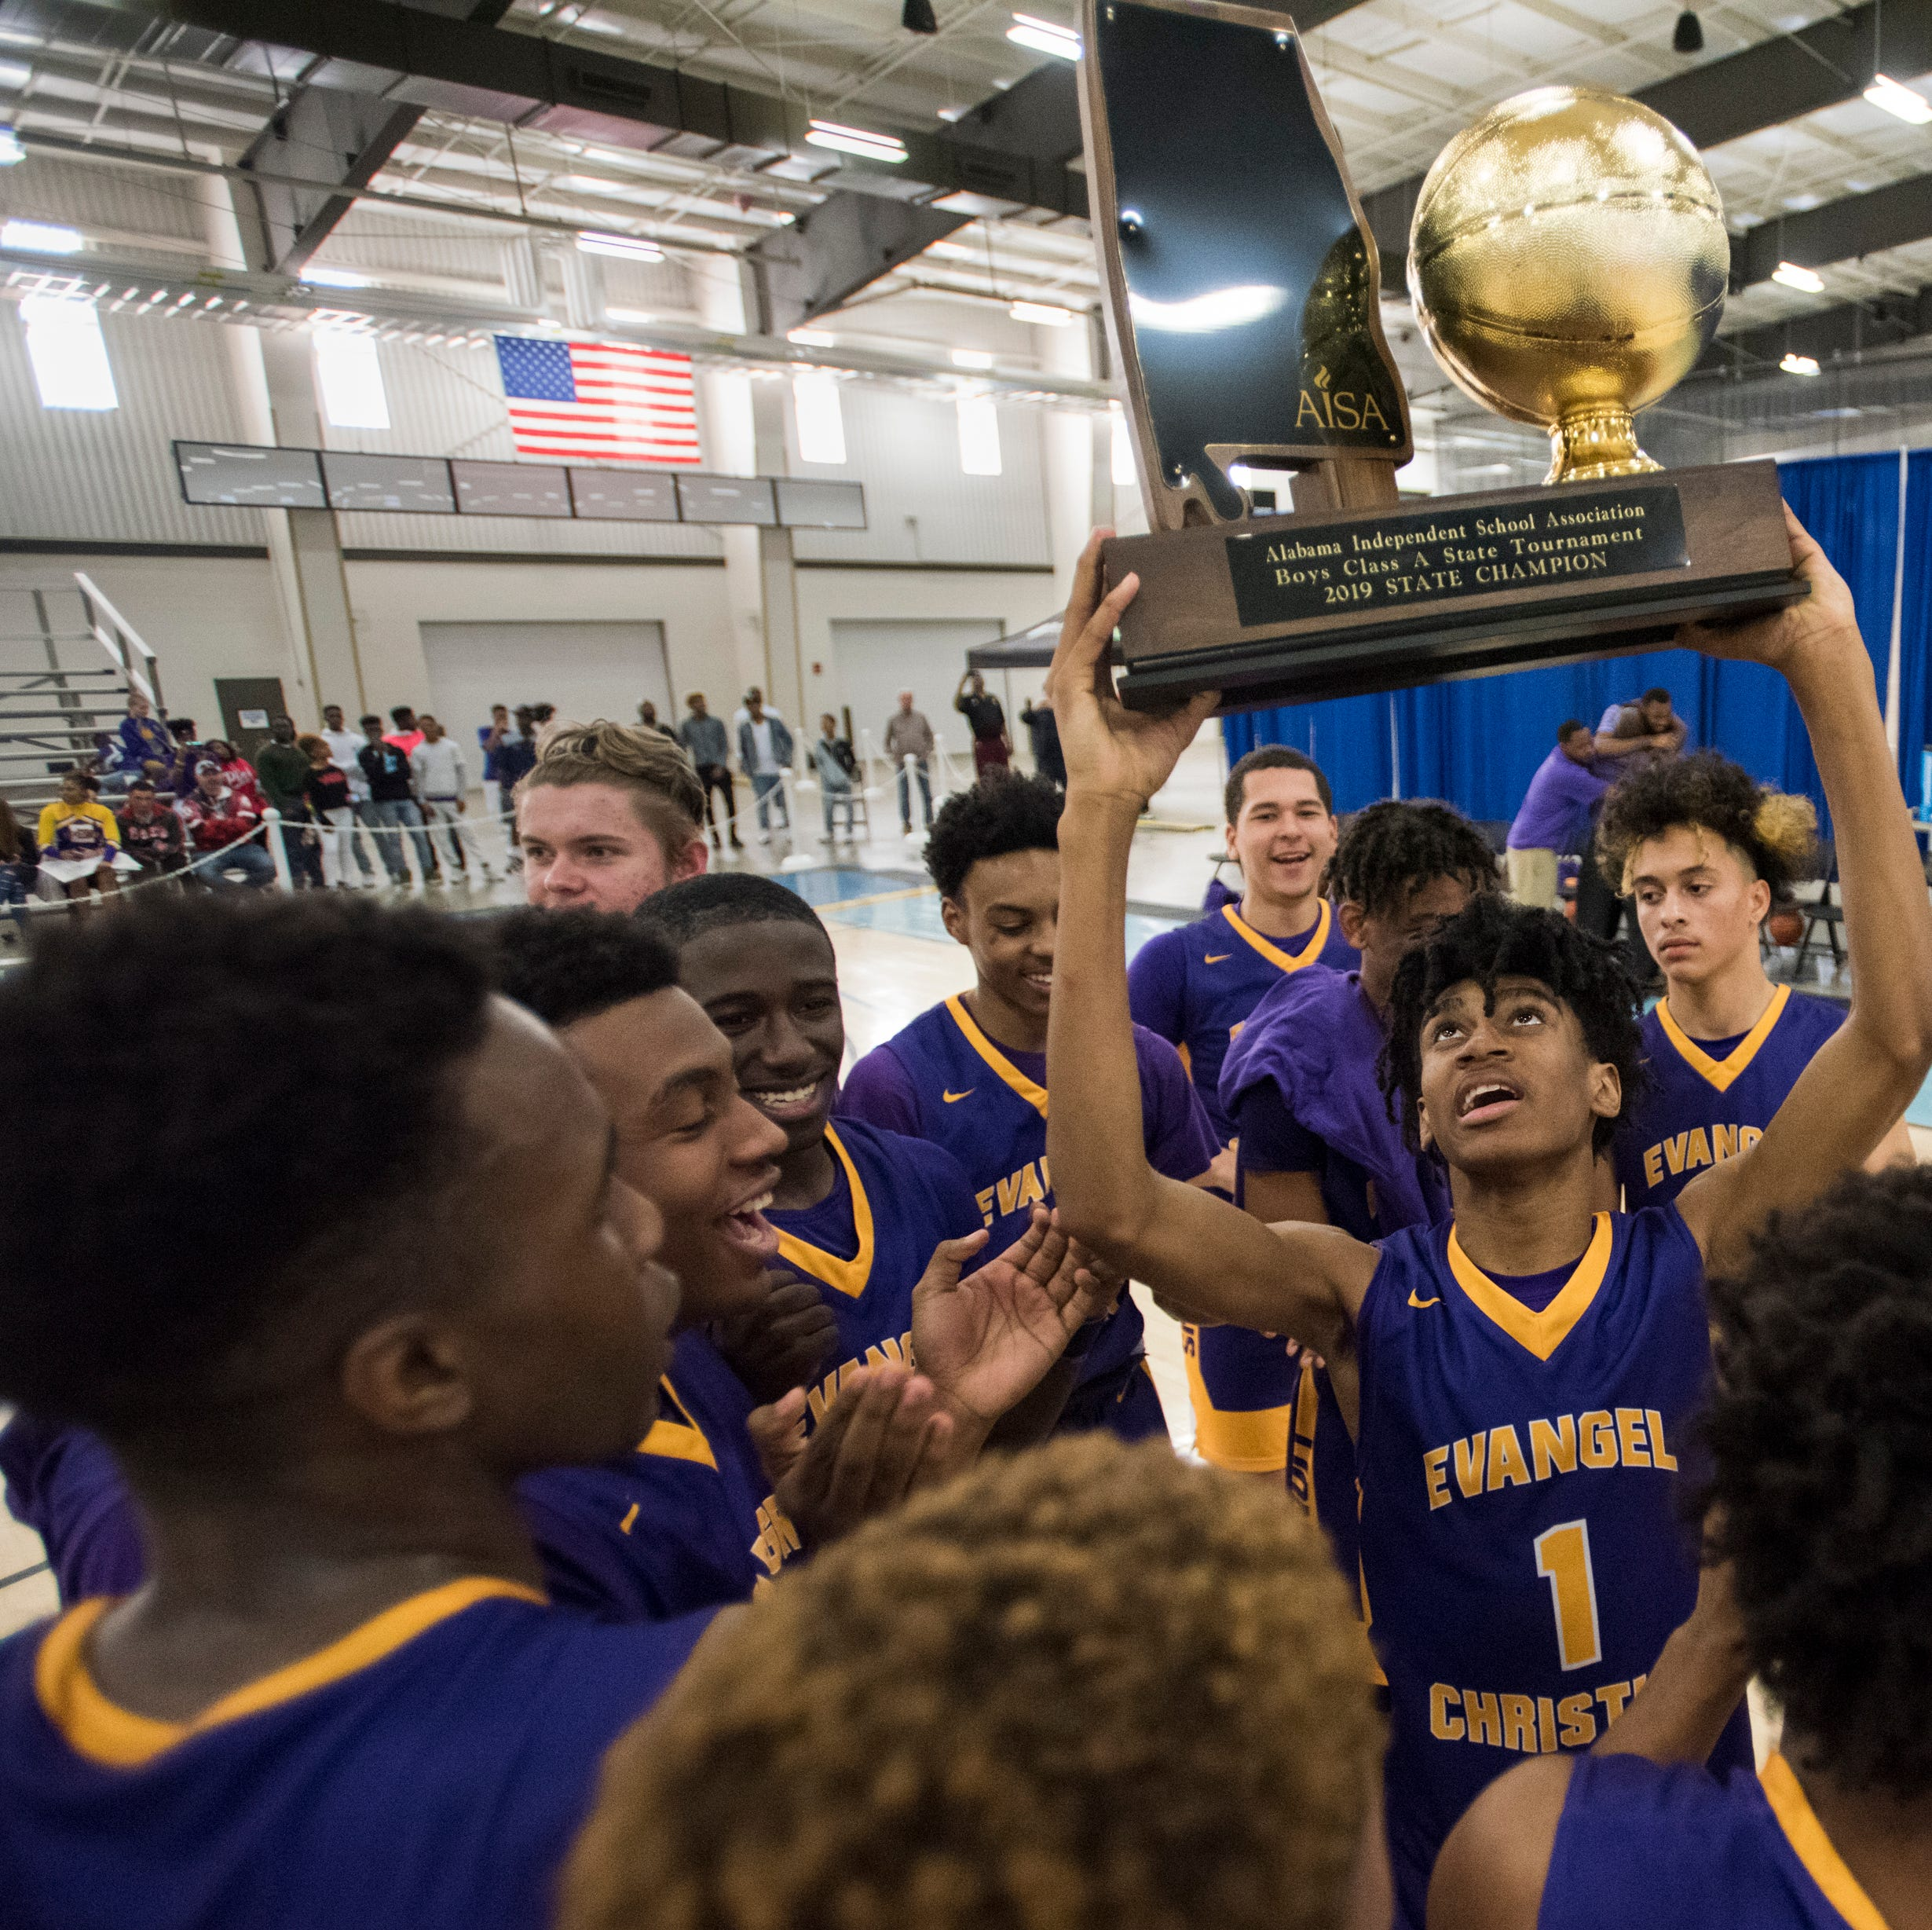 A good cry: Evangel's latest title again brings out coach's tears